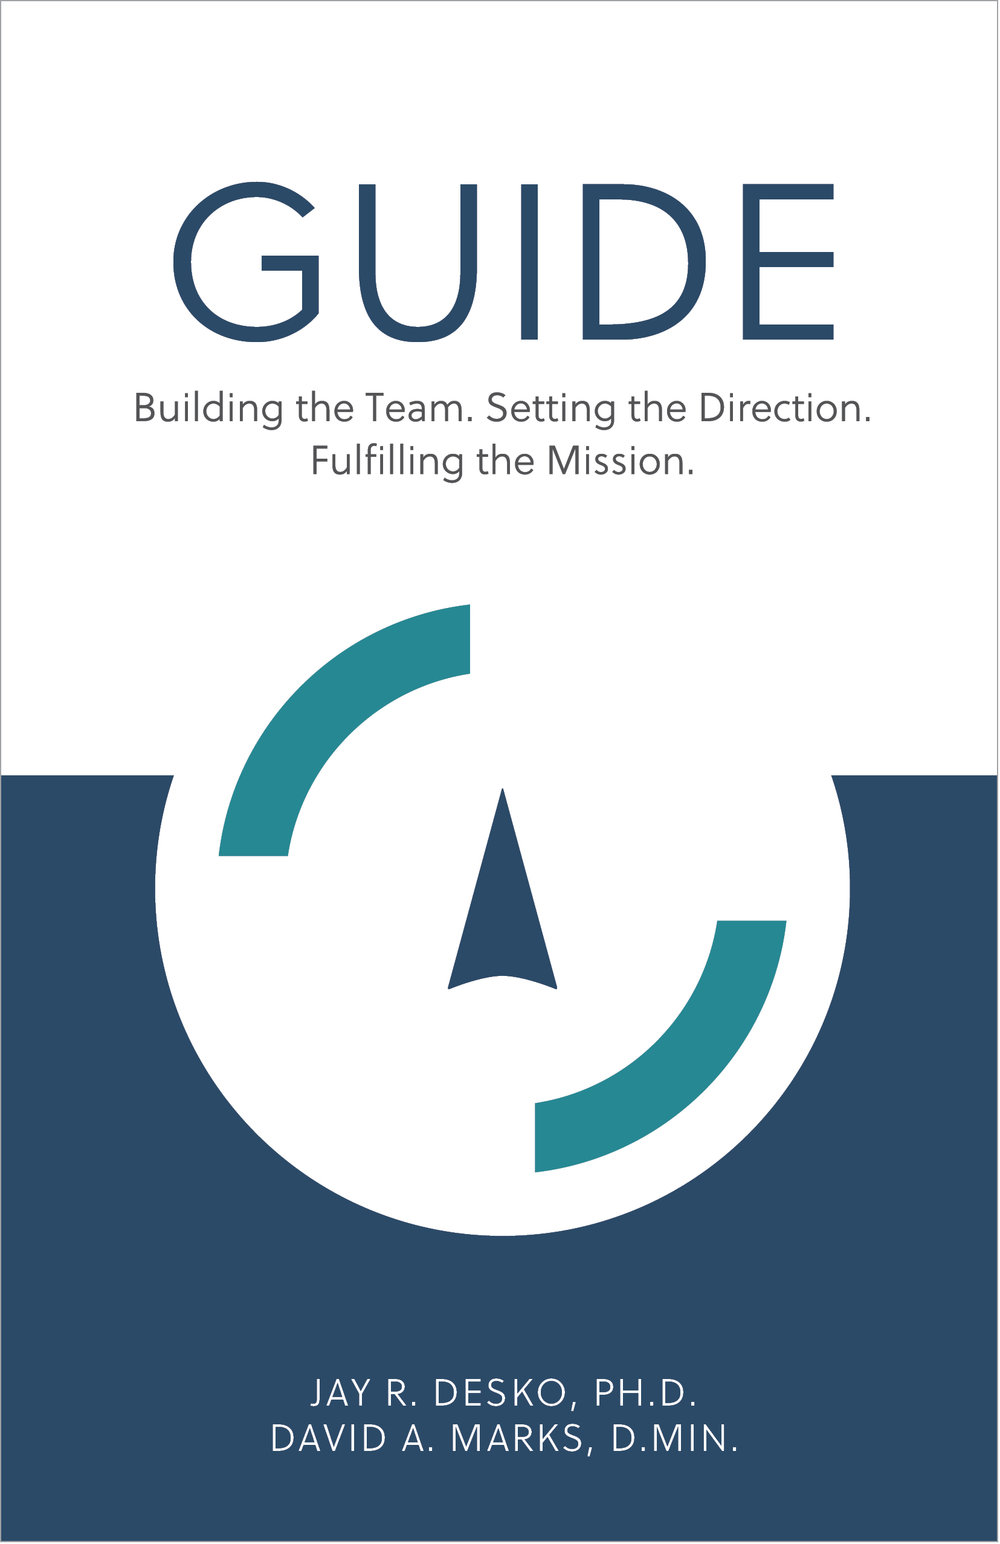 GUIDE – Building the Team. Setting the Direction. Fulfilling the Mission -  By Jay R. Desko, Ph.D. & David A. Marks, D.Min. - The Center Consulting - Organizational and leadership consulting and coaching for businesses, nonprofits, and churches